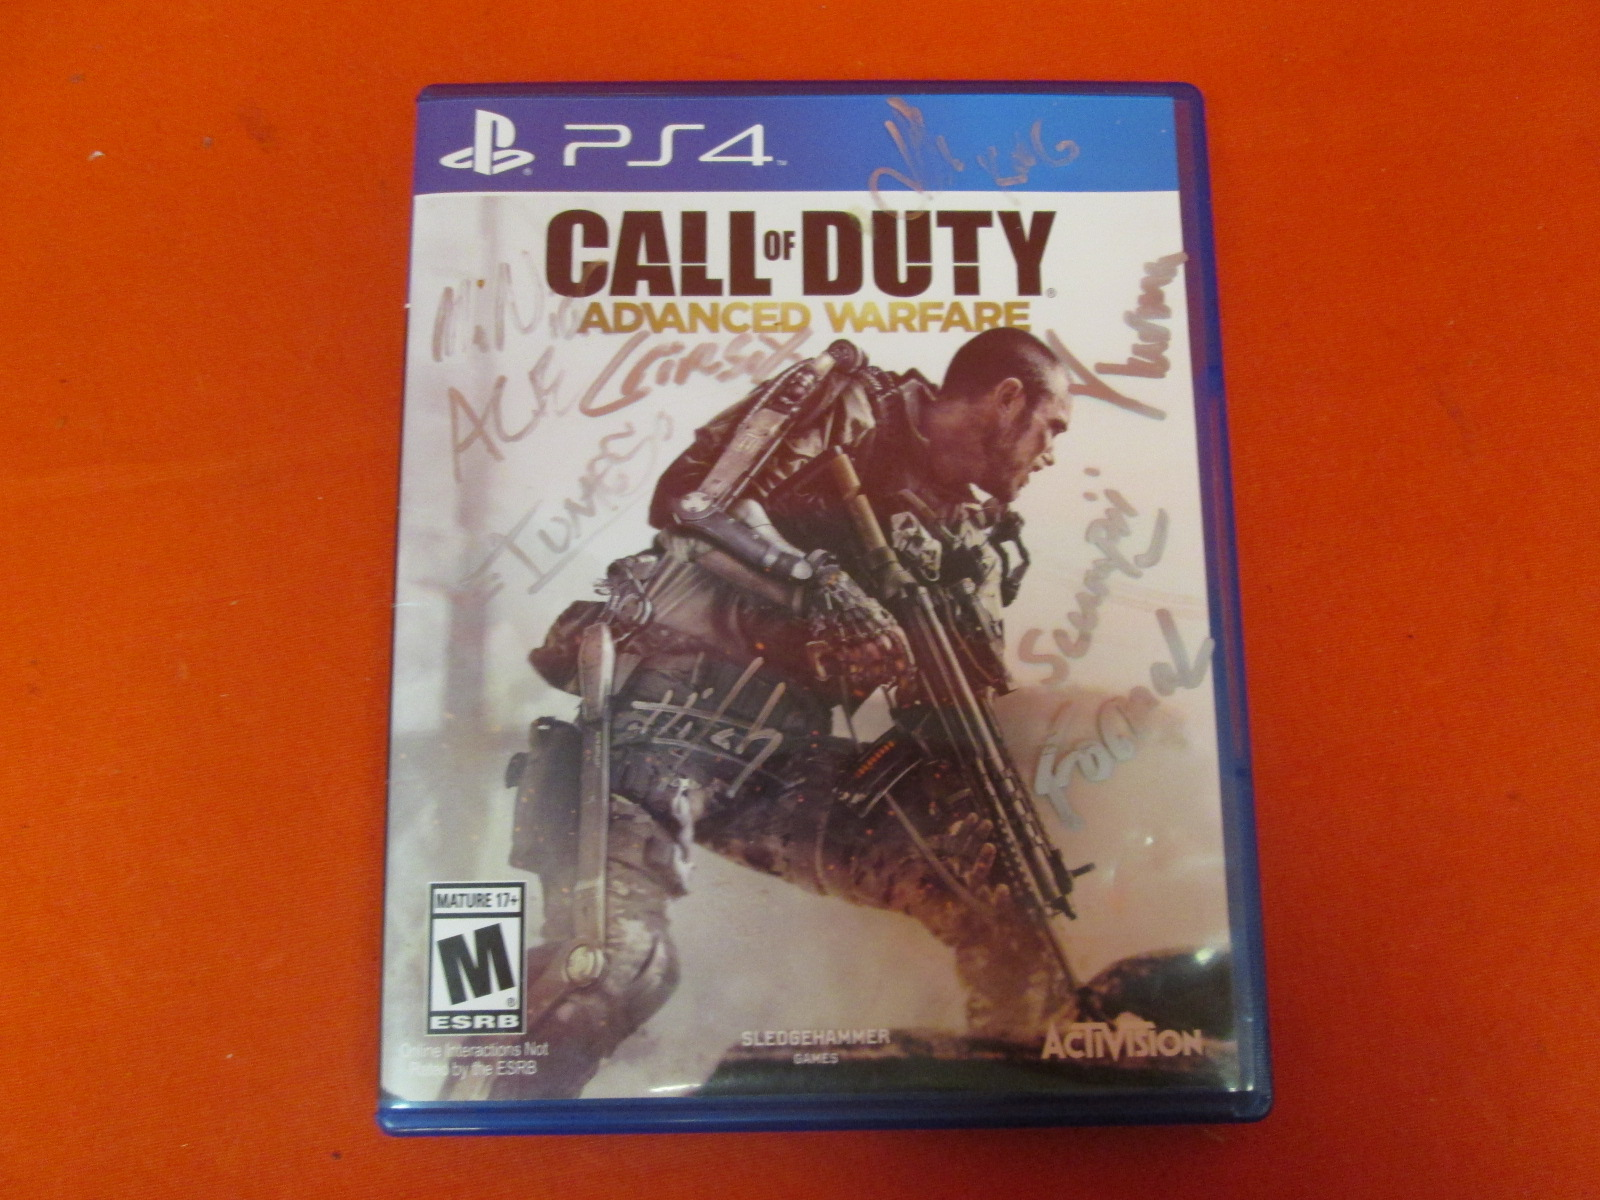 Call Of Duty: Advanced Warfare For PlayStation 4 Signed By Optic Hitch